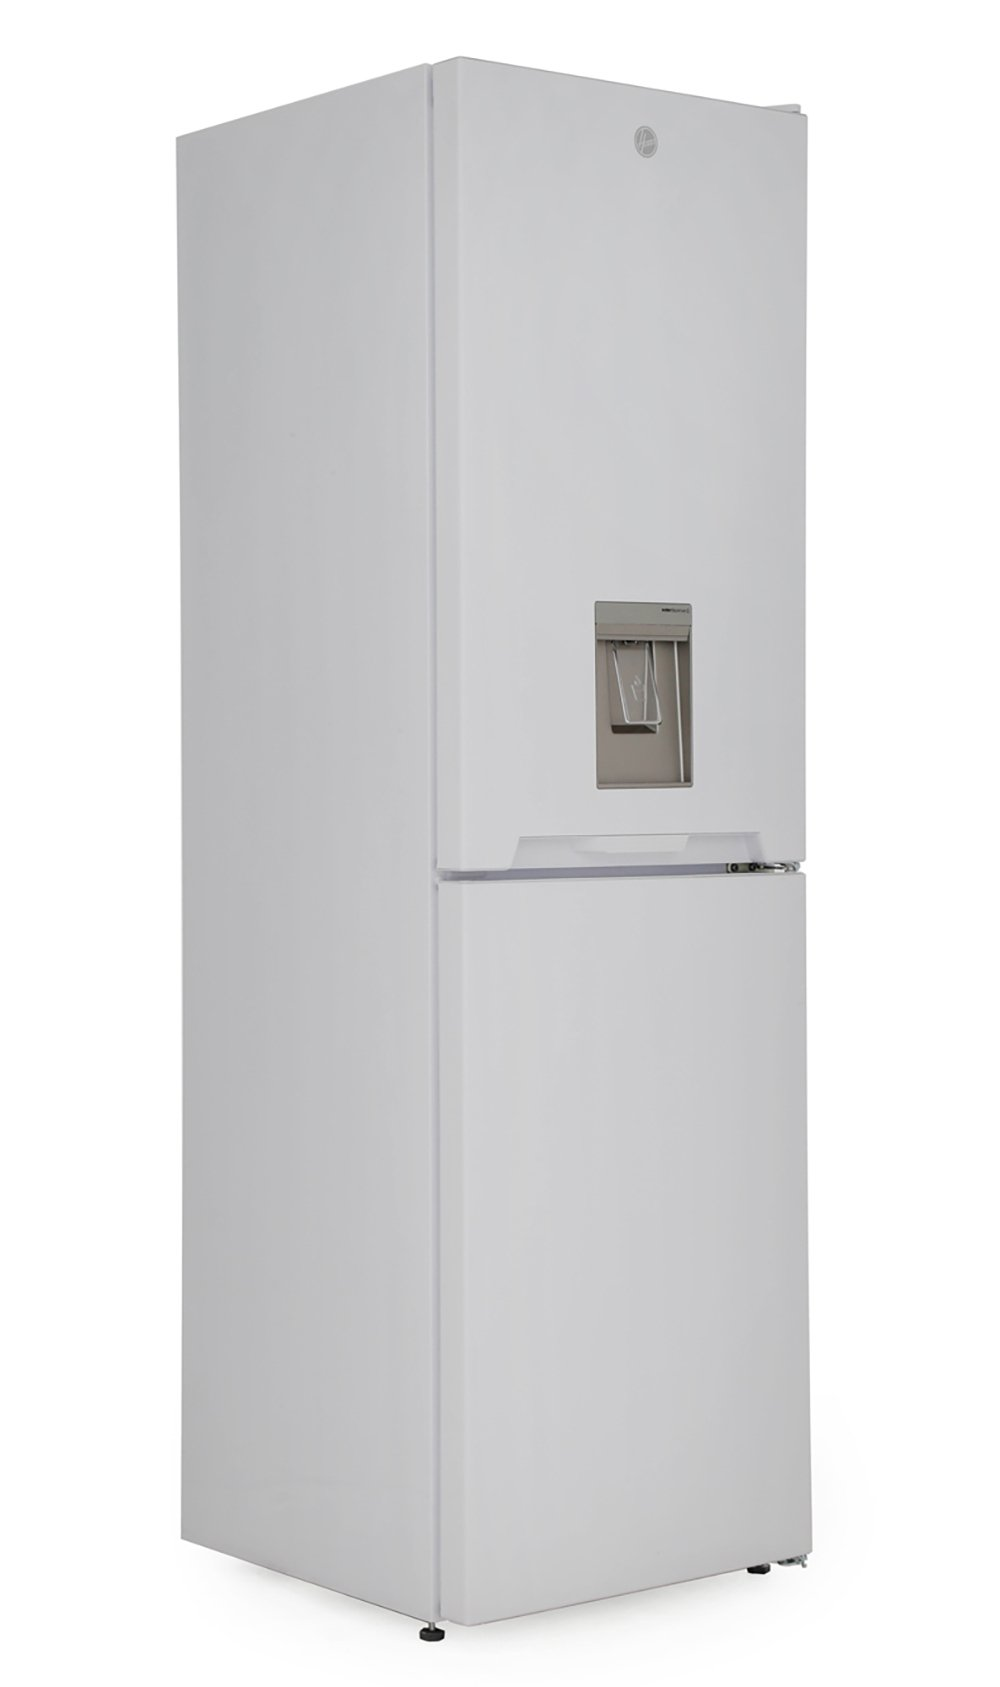 Hoover HVS 1745WWDK Static Fridge Freezer